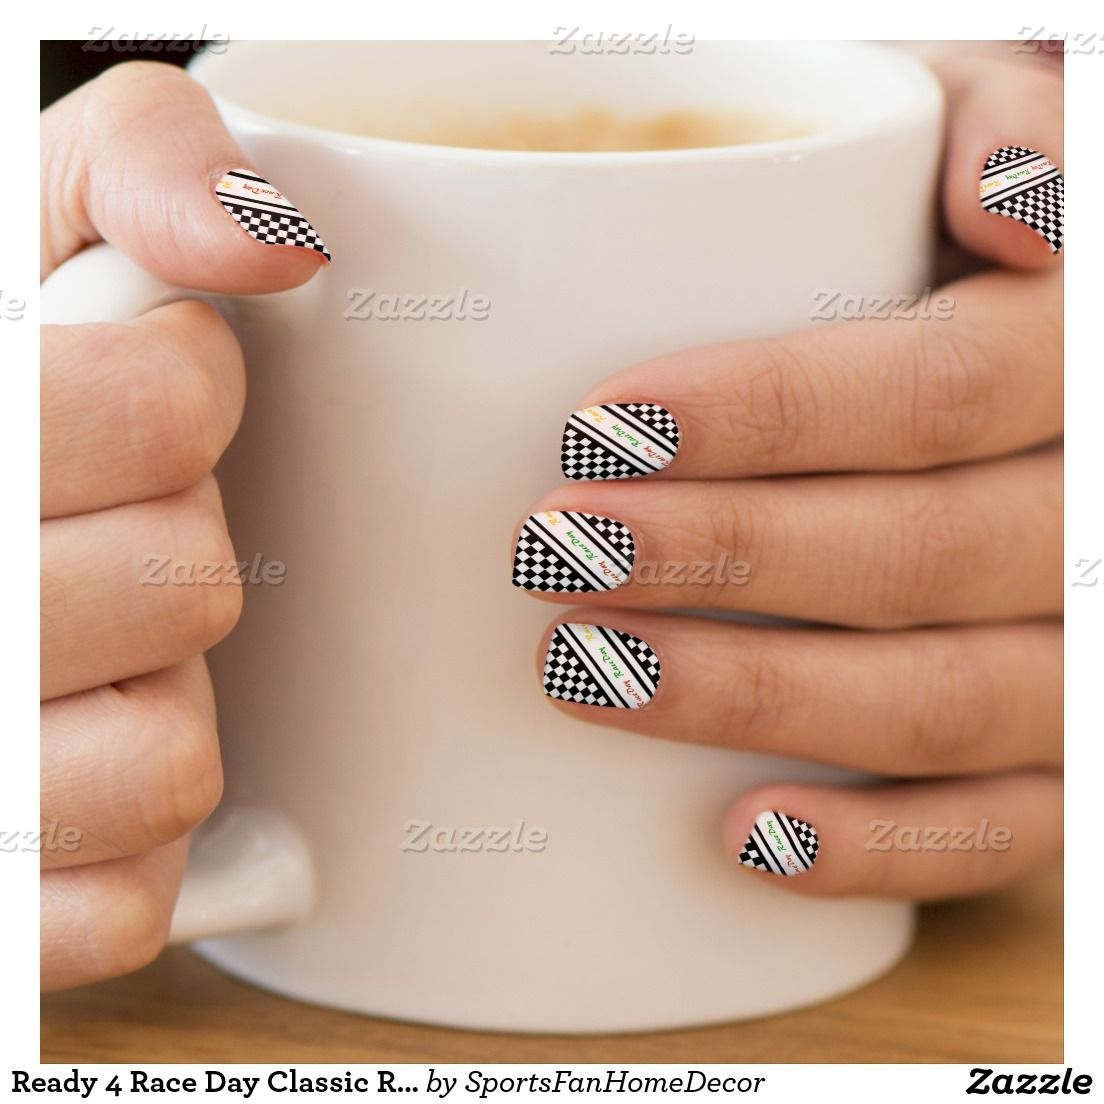 Ready 4 Race Day Classic Racing Check Black White Minx ® Nail Art